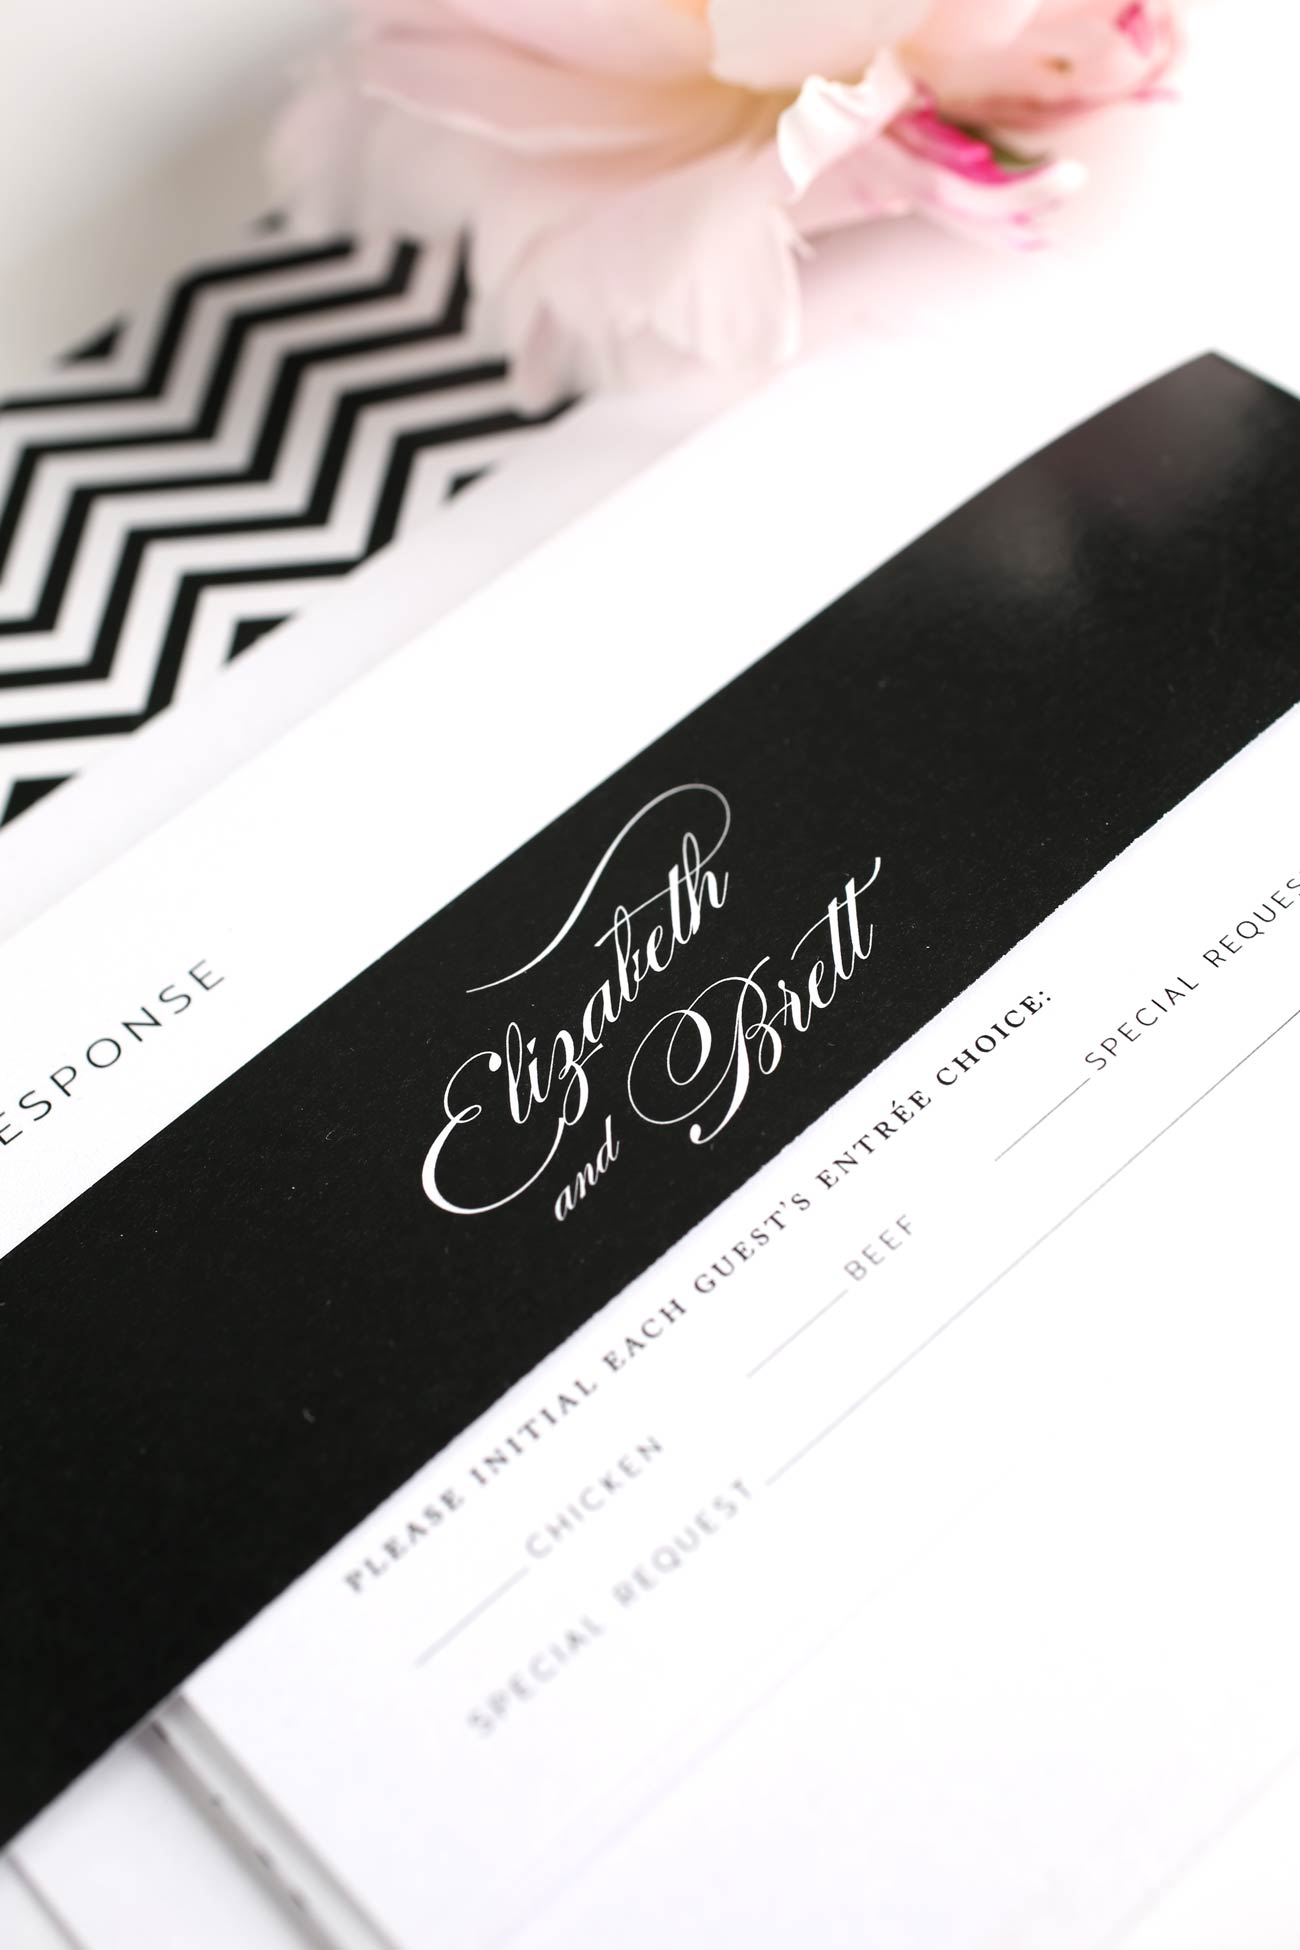 Glamorous wedding invitations